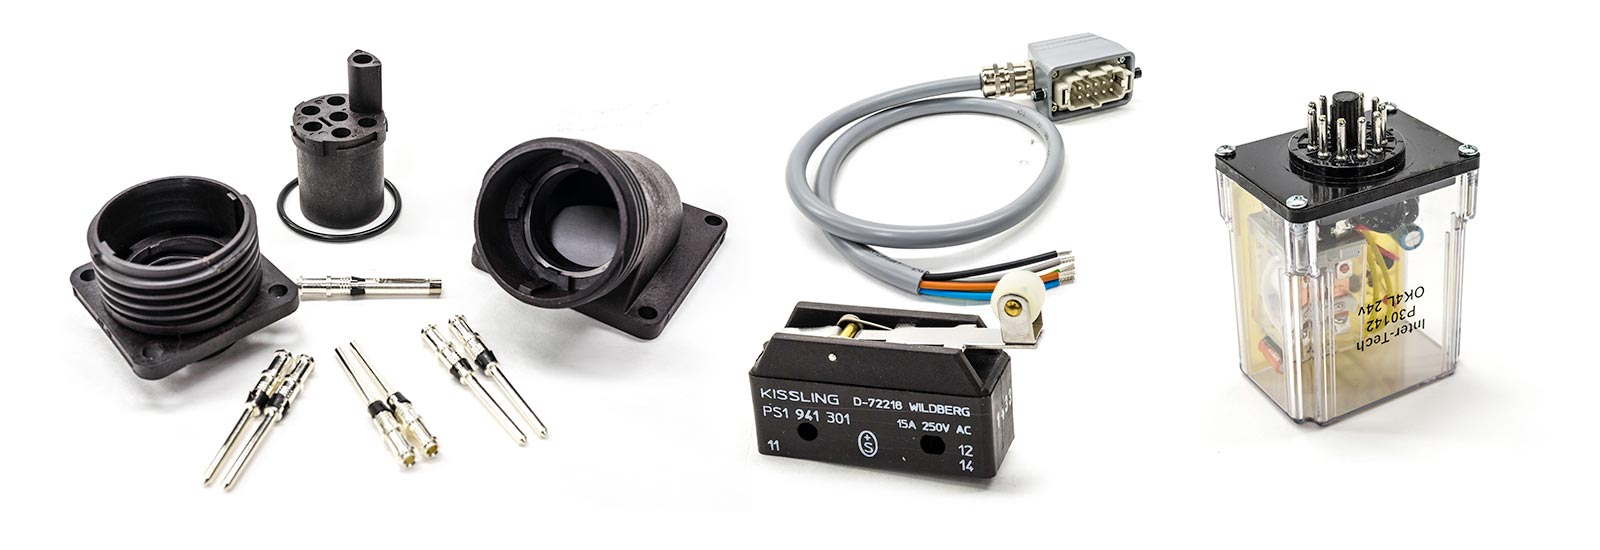 Multivac switches